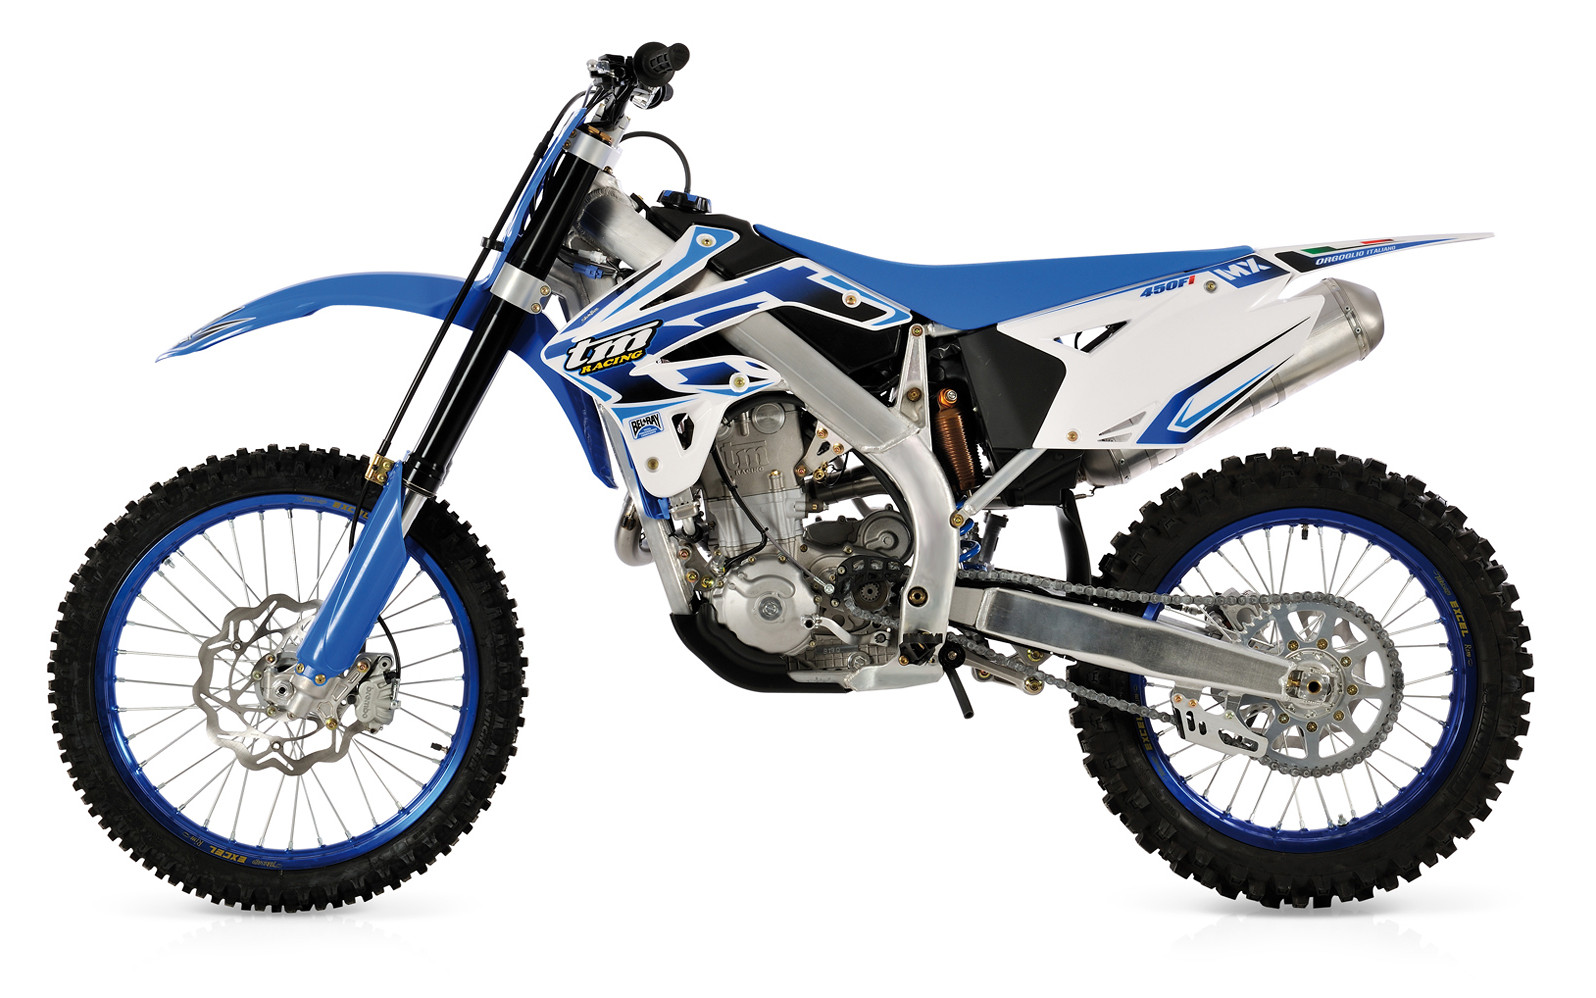 2013 Tm Racing Mx 450 Fi Reviews Comparisons Specs